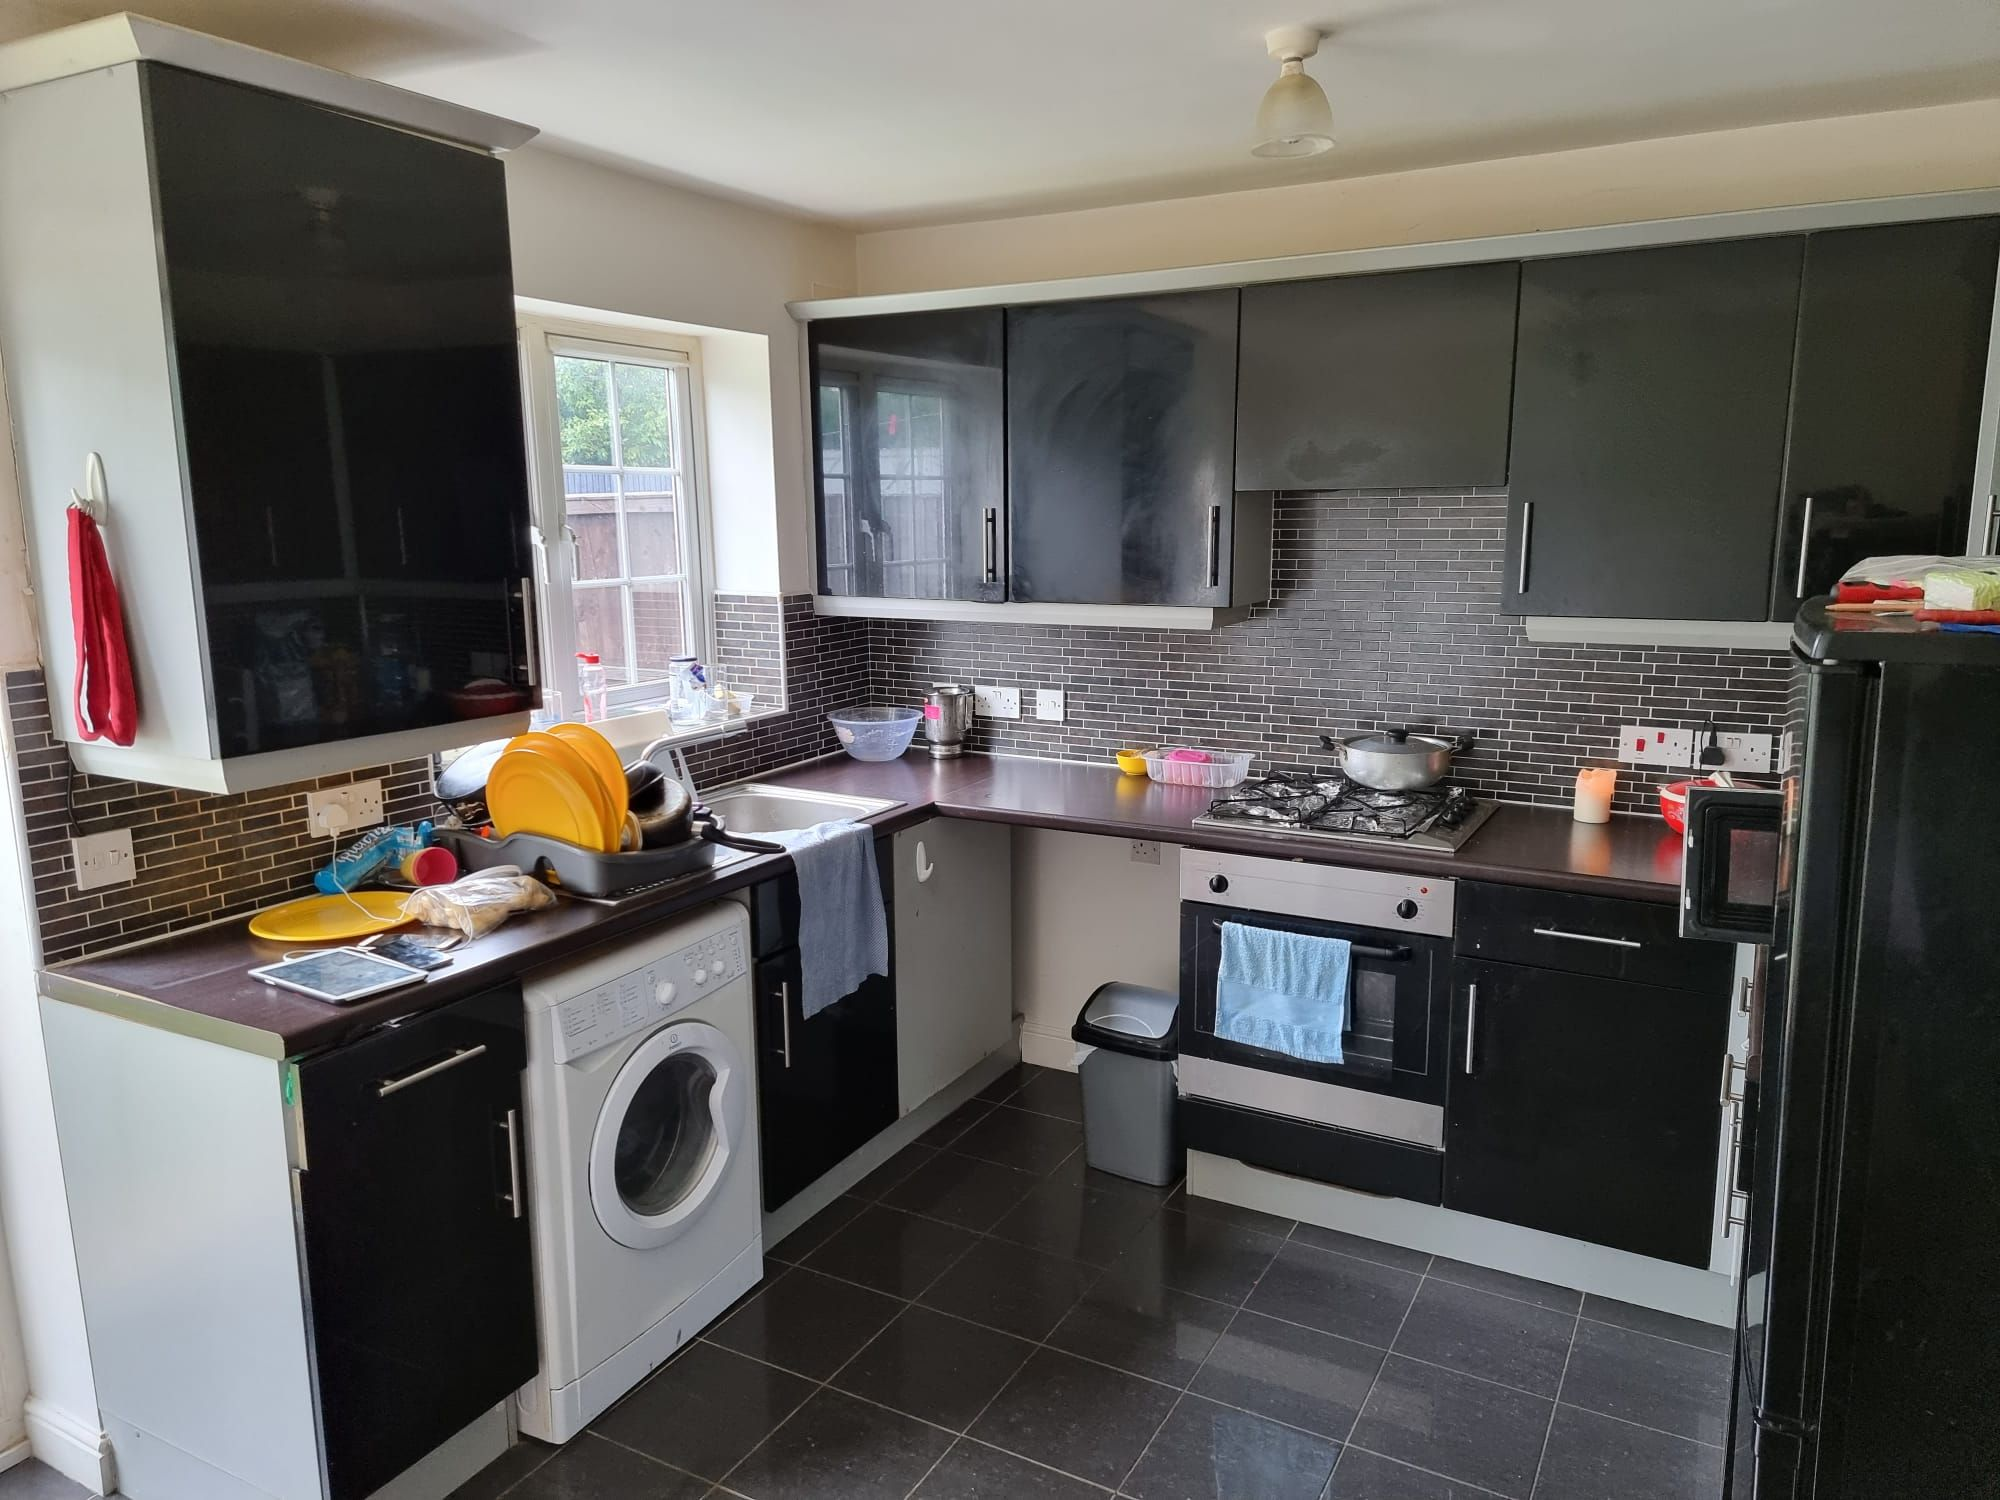 3 bedroom semi-detached house For Sale in Leicester - Photograph 3.